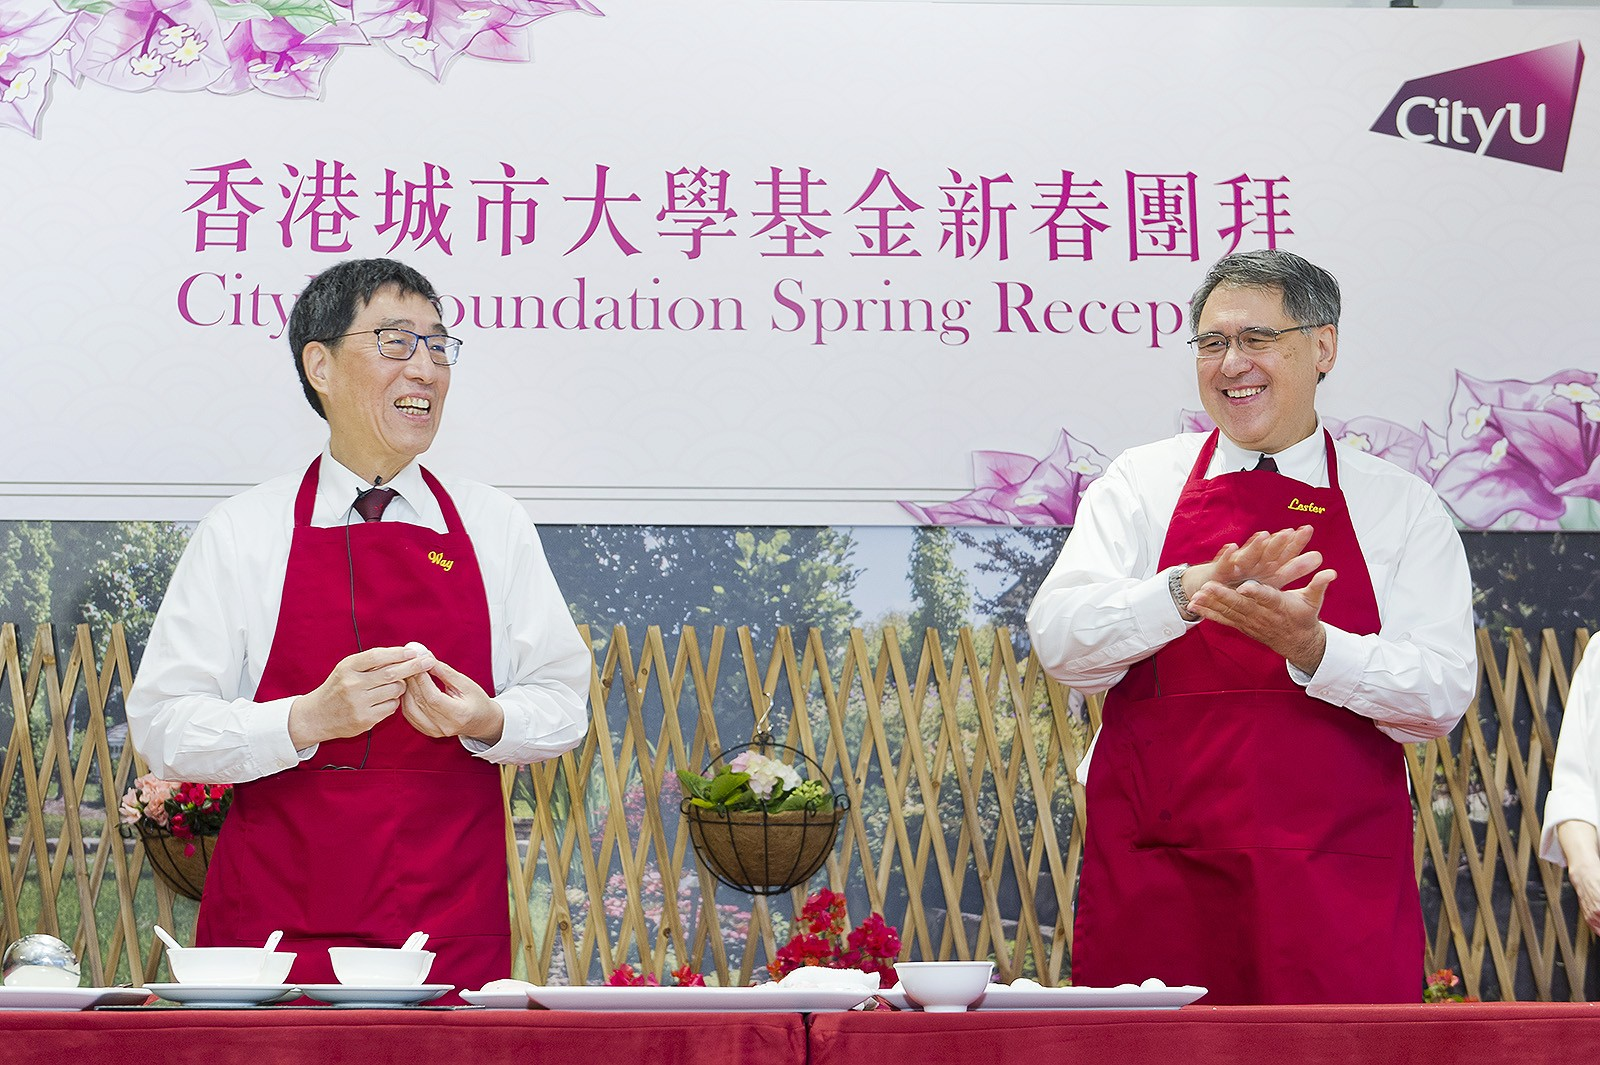 Professor Kuo (left) and Mr Huang made pig-shaped glutinous rice dumplings to say thank you to members of CityU Foundation and CityU good friends for their support.